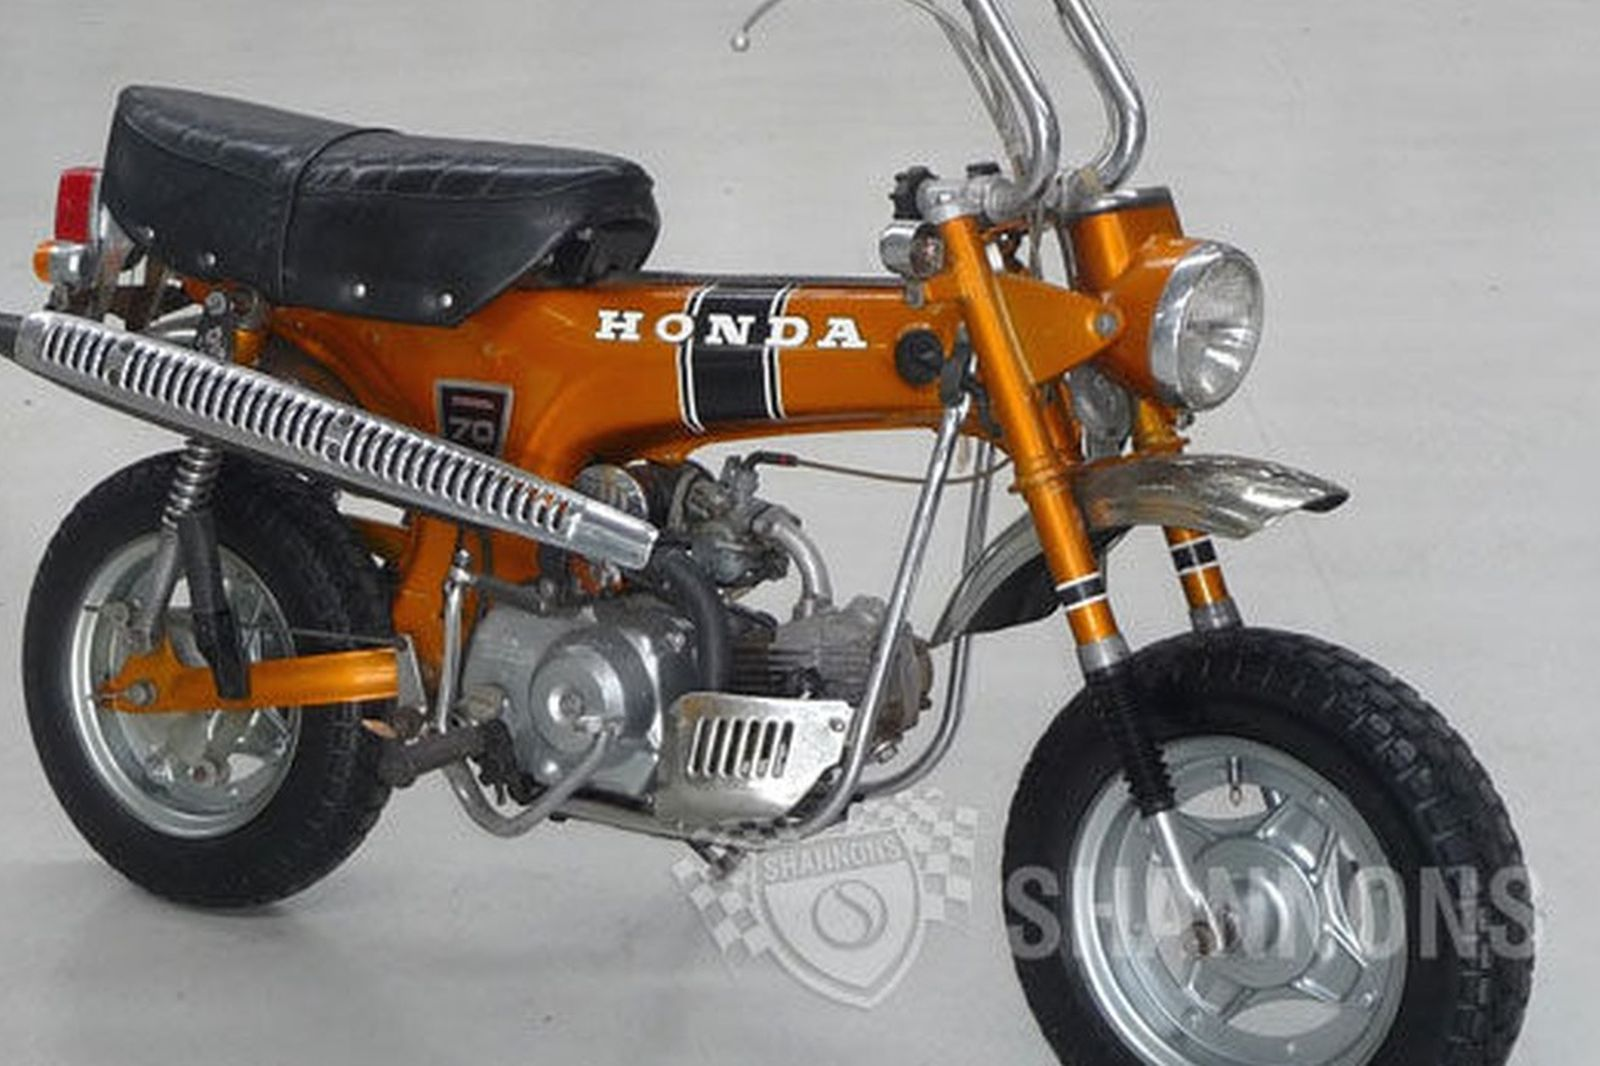 Sold Honda St70 Dax Trail Bike Auctions Lot 1 Shannons